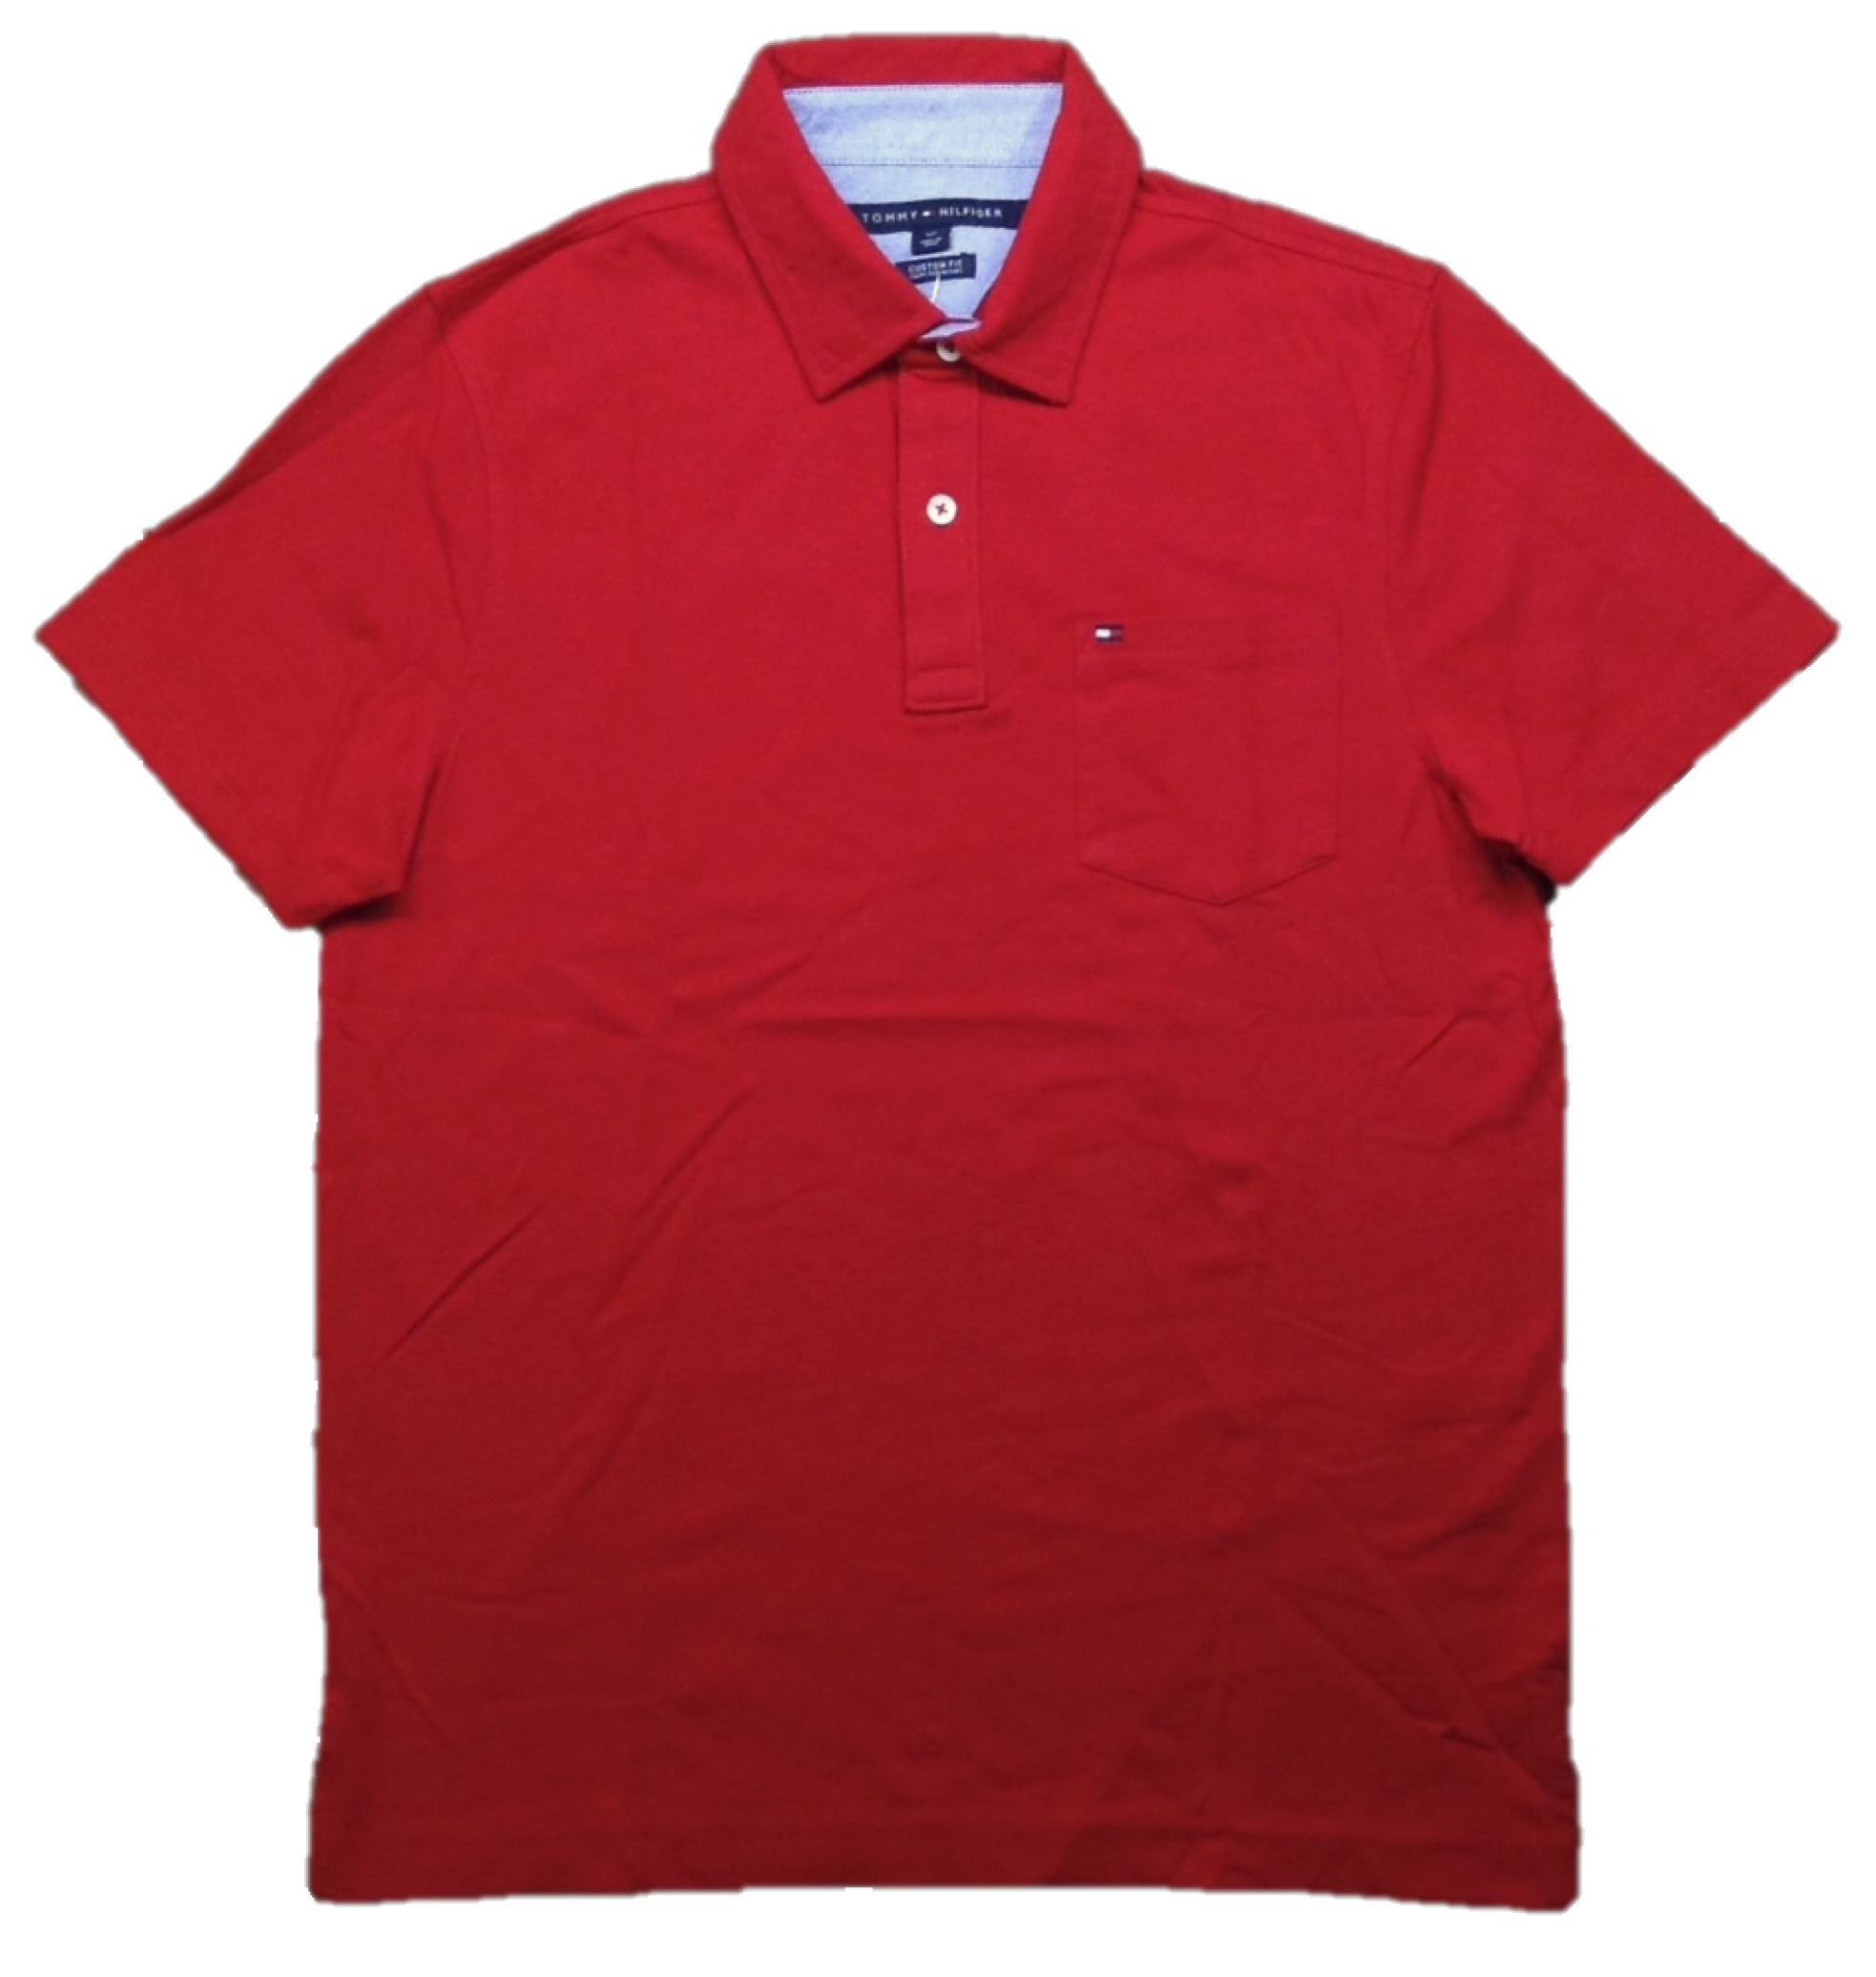 TOMMY HILFIGER POLO SHIRTS ... picture 2 of 2 QXSLSHM